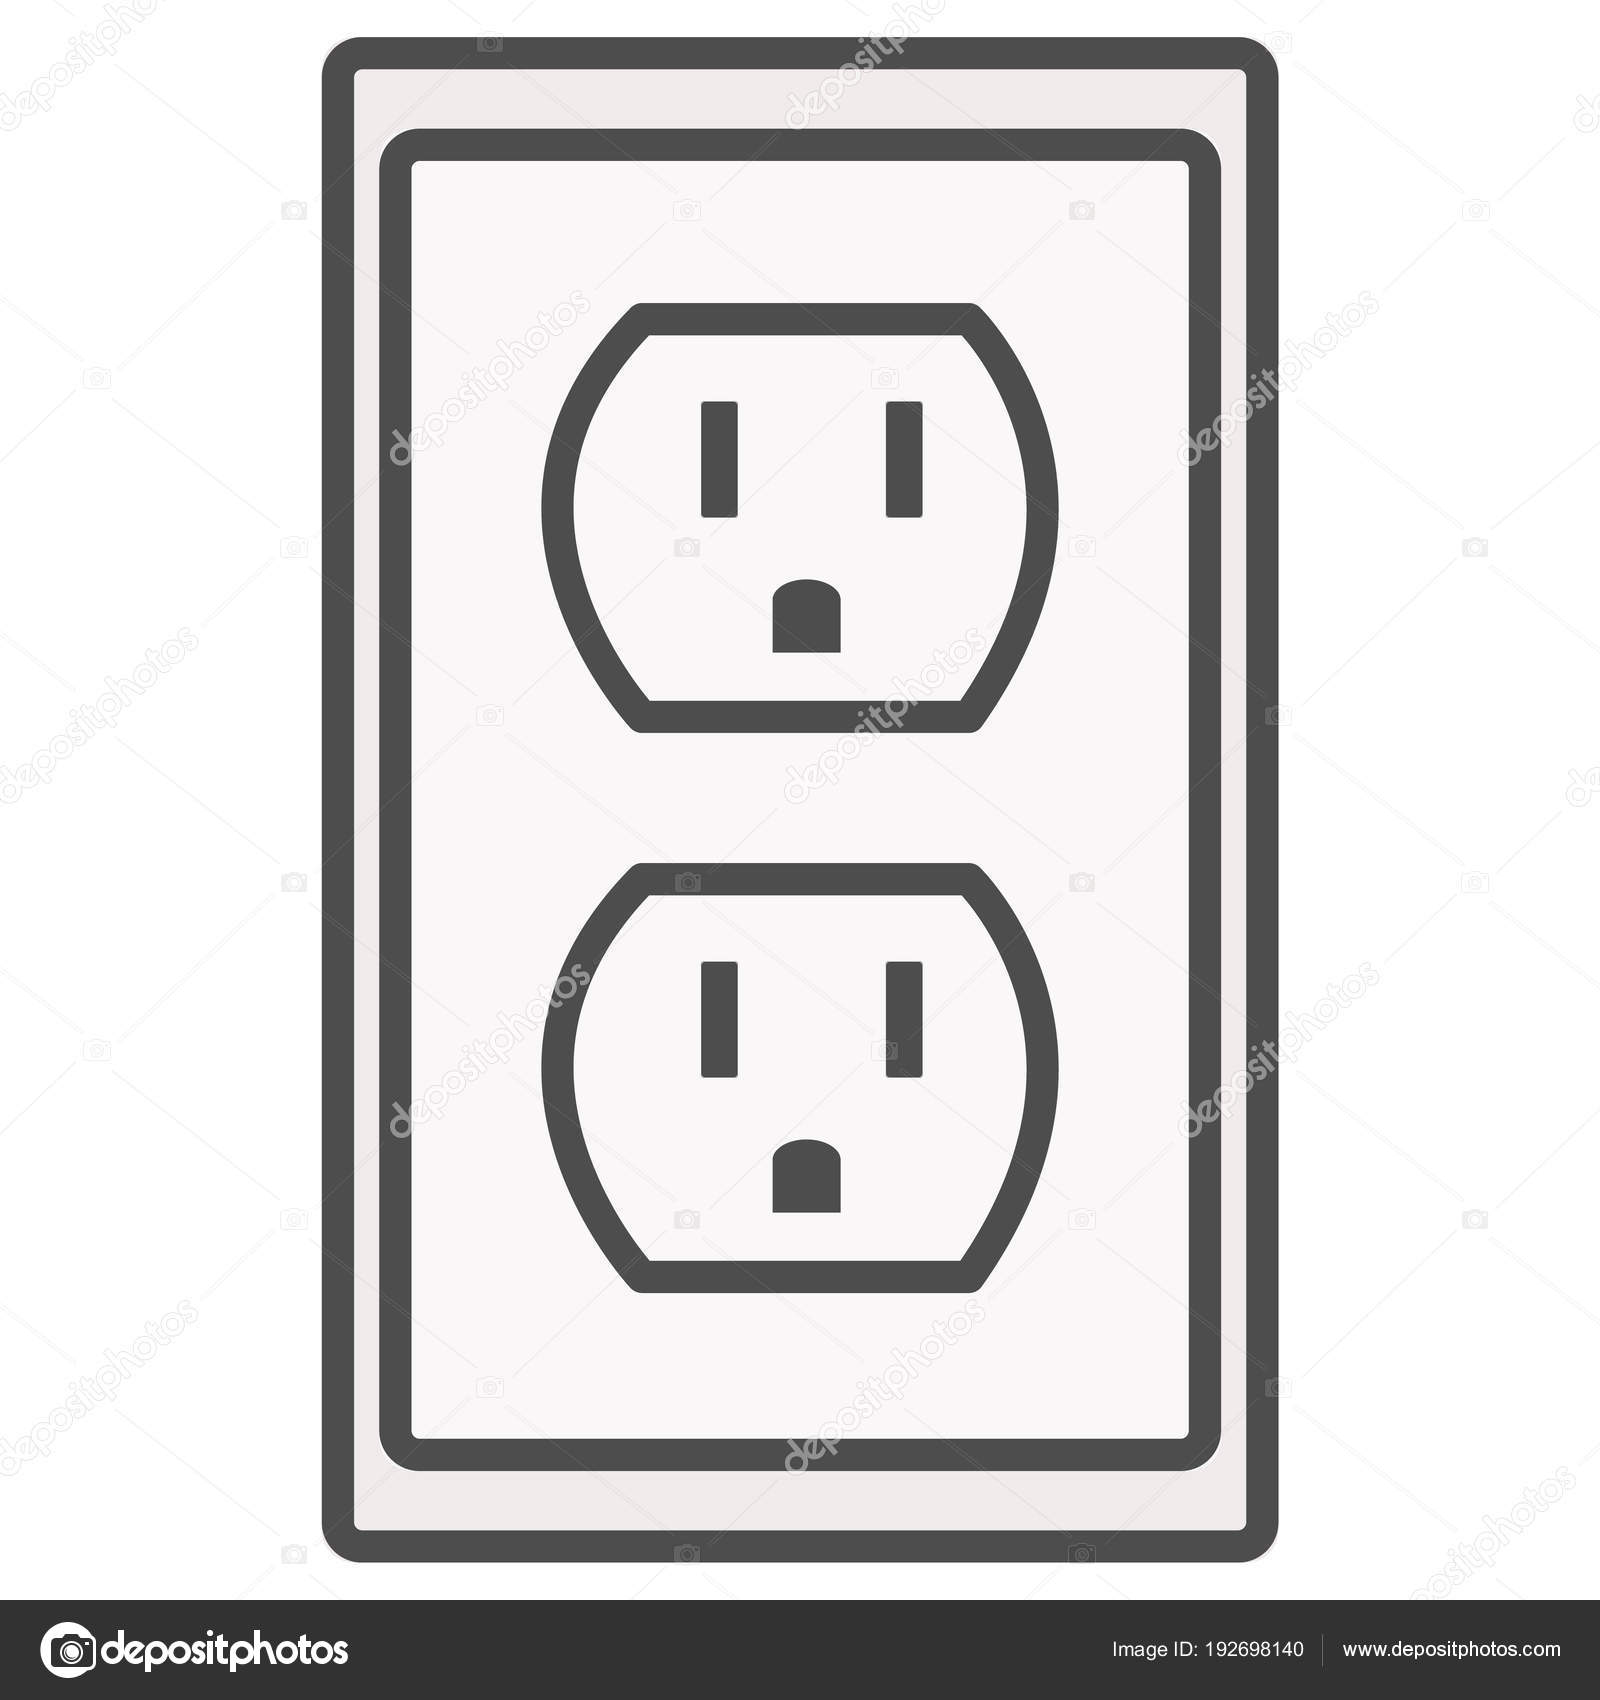 Electric outlet symbol | Grounded power outlets symbol ... on electrical transformer symbol, electrical lighting symbol, electrical cabinet symbol, electrical light symbol, electrical socket symbol, electrical ground symbol, electrical panel symbol, electrical float switch symbol, electrical wall switch symbol, electrical motor symbol, electrical power symbol, electrical fan symbol, electrical conduit symbol, electrical outlet symbol, electrical cap symbol, electrical fuse symbol, electrical plug symbol, antenna electrical symbol, electrical circuit breaker symbol, electrical switches symbol,